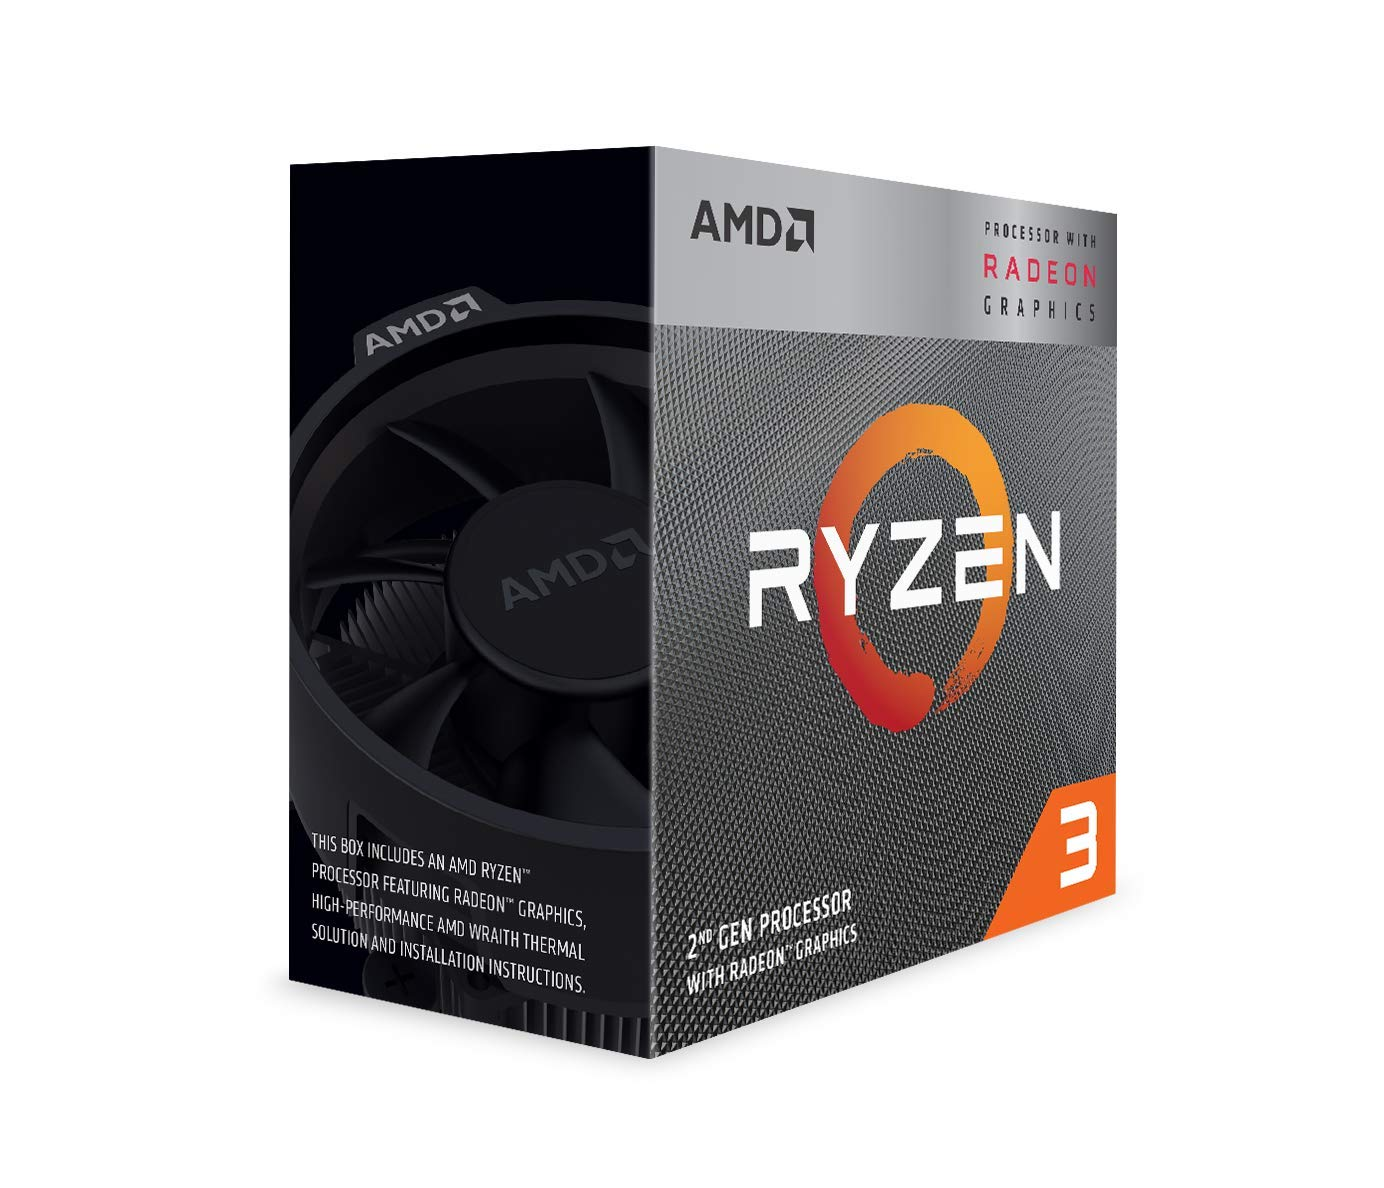 AMD Ryzen 3 3200G Processor (4C/4T, 6MB cache, 4 0GHz Max Boost) with  Radeon™ Vega 8 Graphics